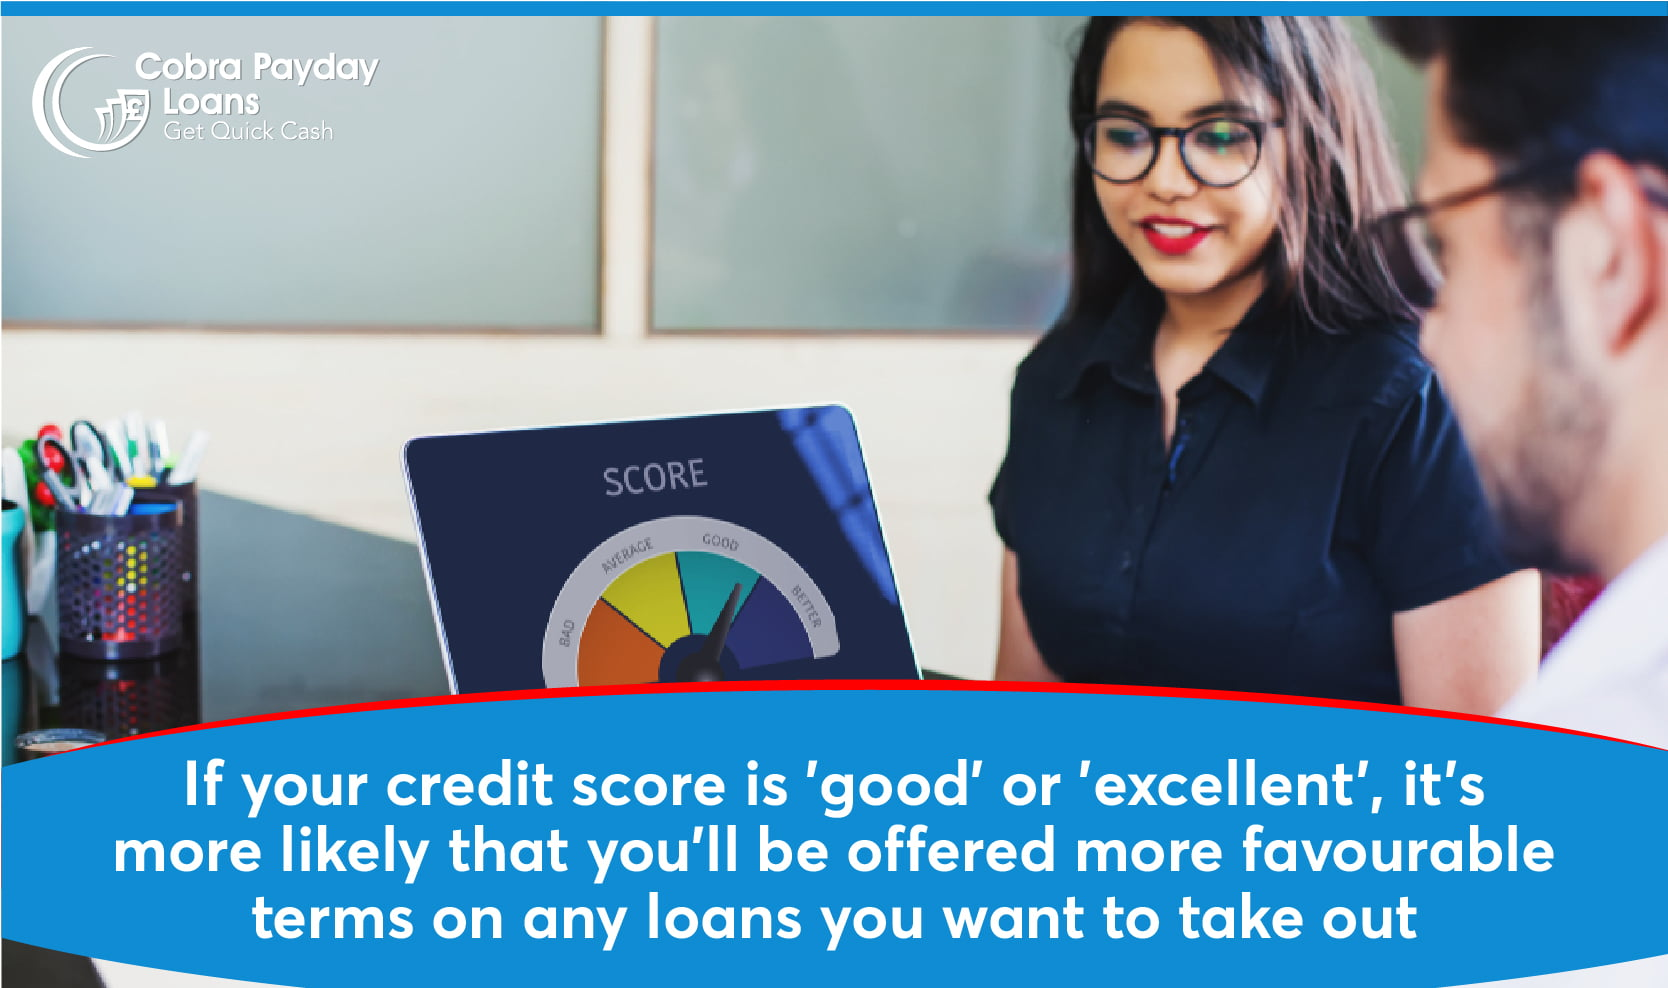 If your credit score is 'good' or 'excellent', it's more likely that you'll be offered more favourable terms on any loans you want to take out